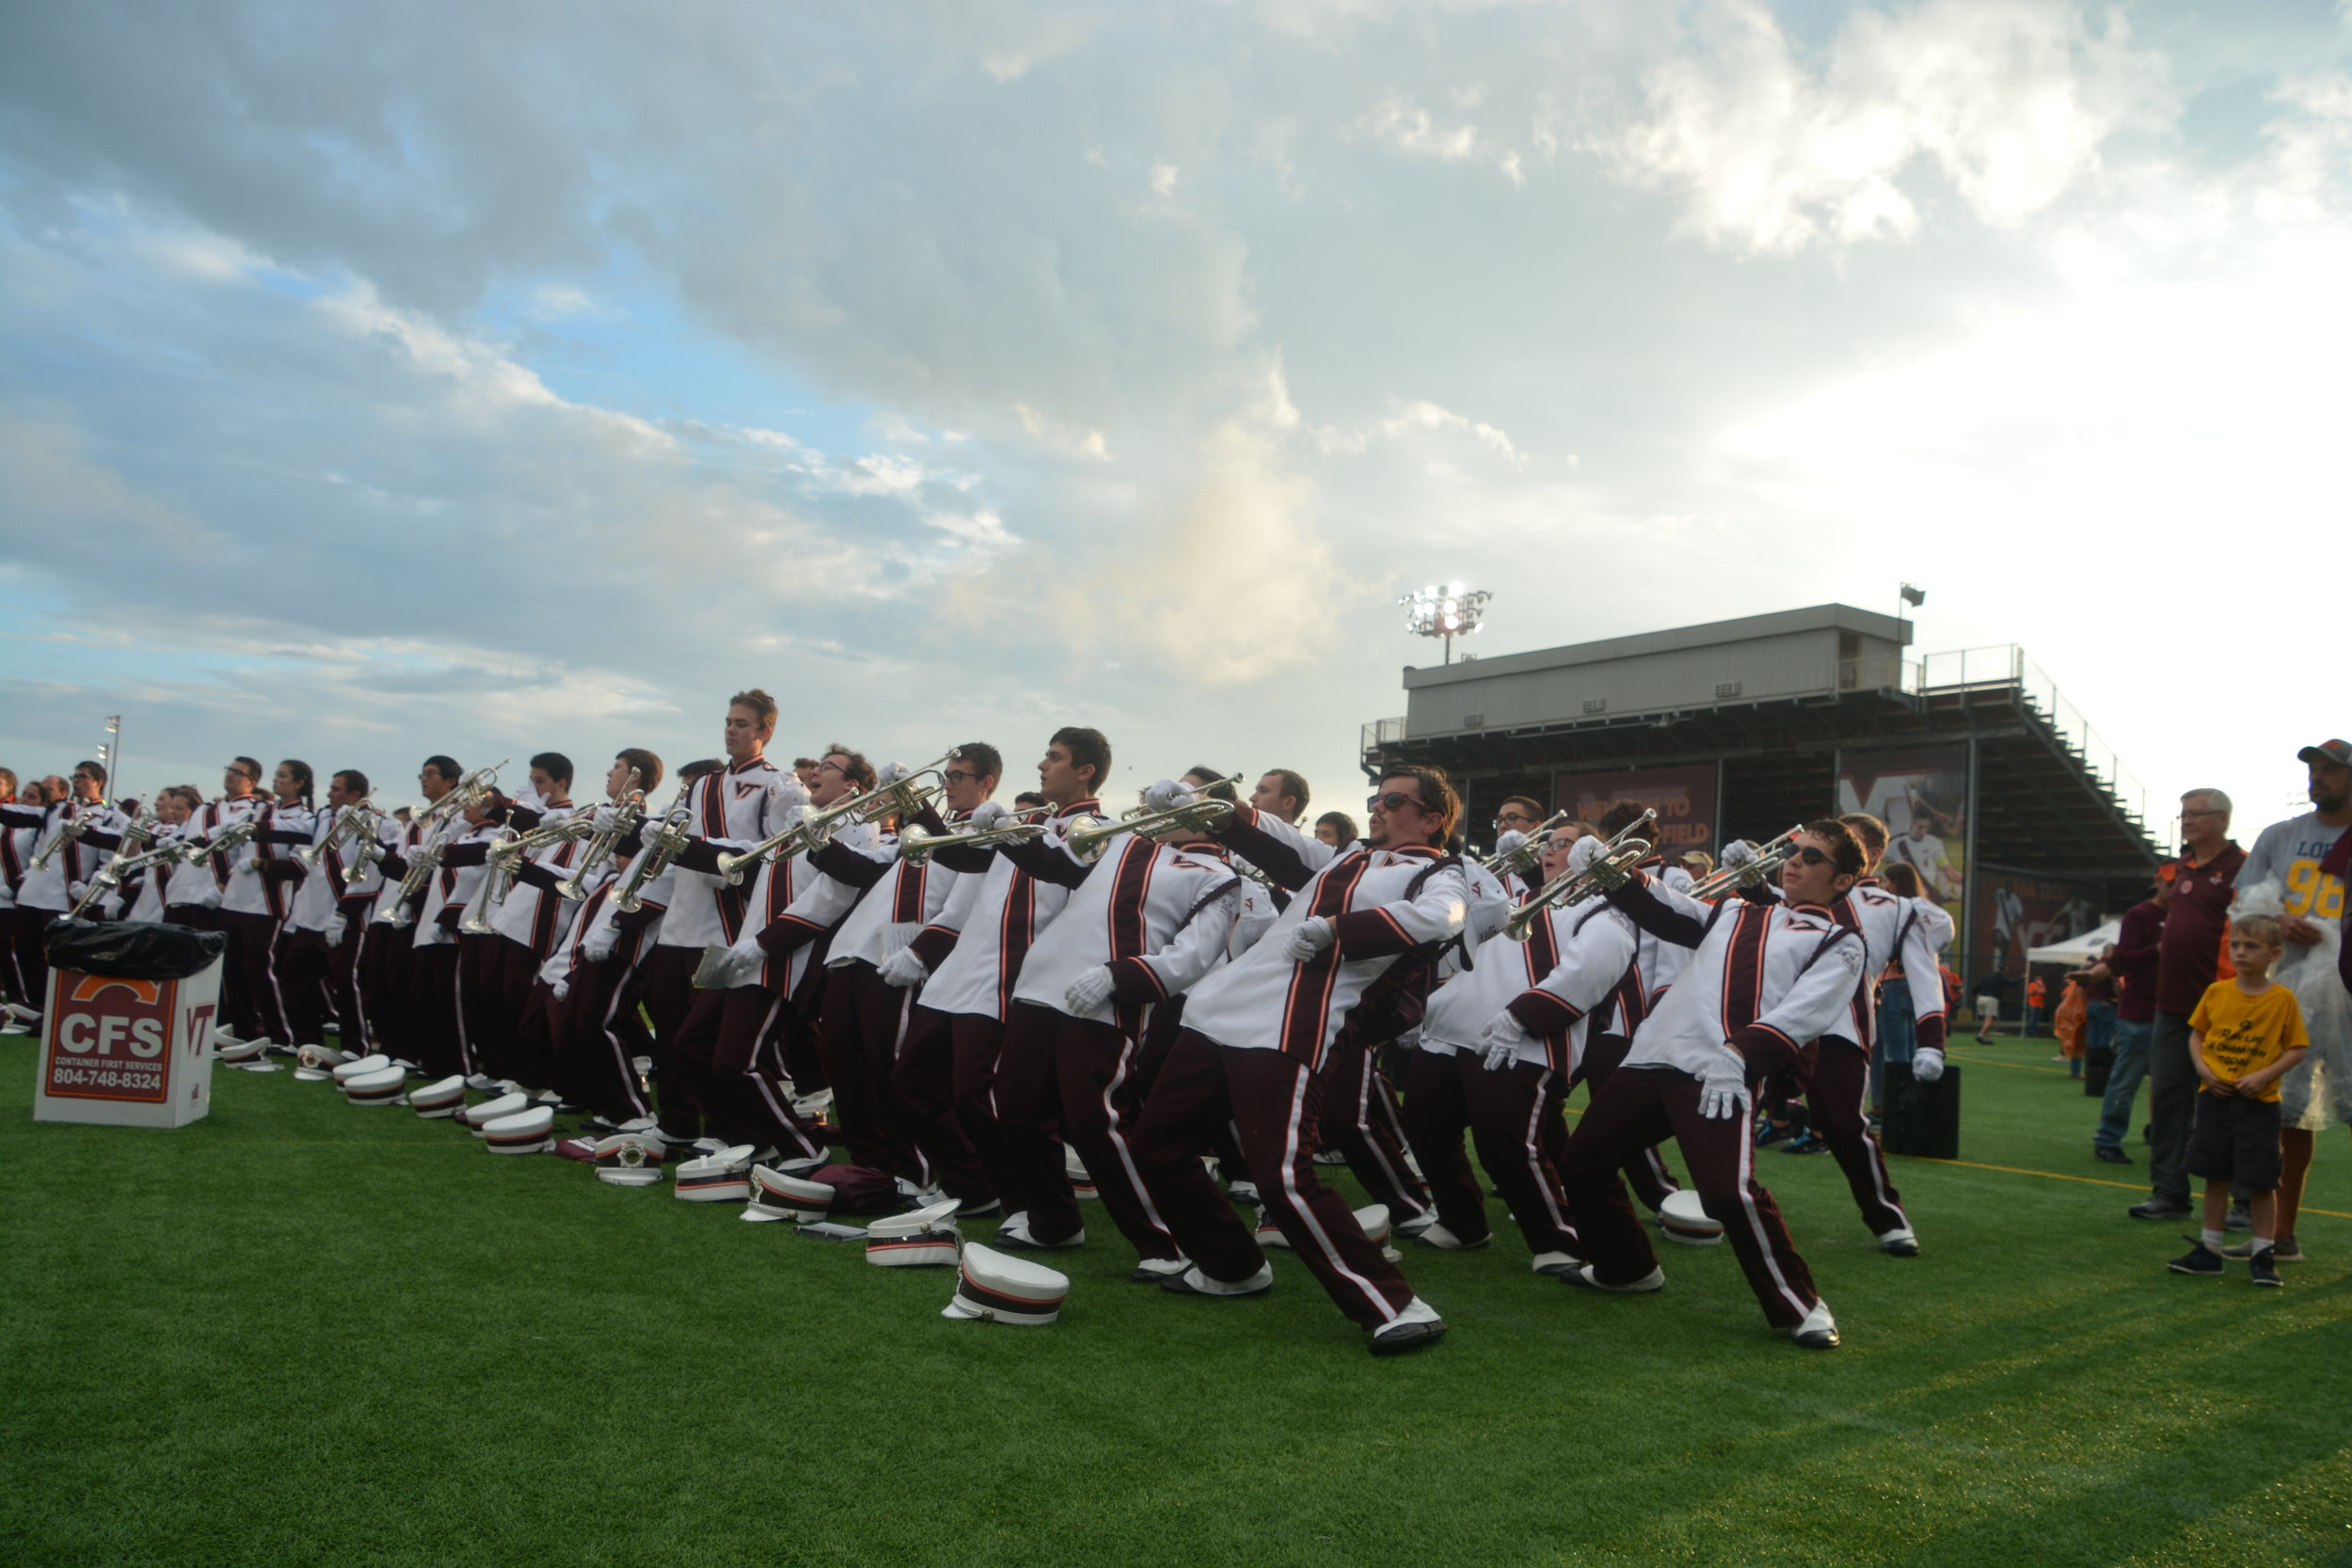 MV showing off their dance moves at Hokie Village; Source: Alana Hassett